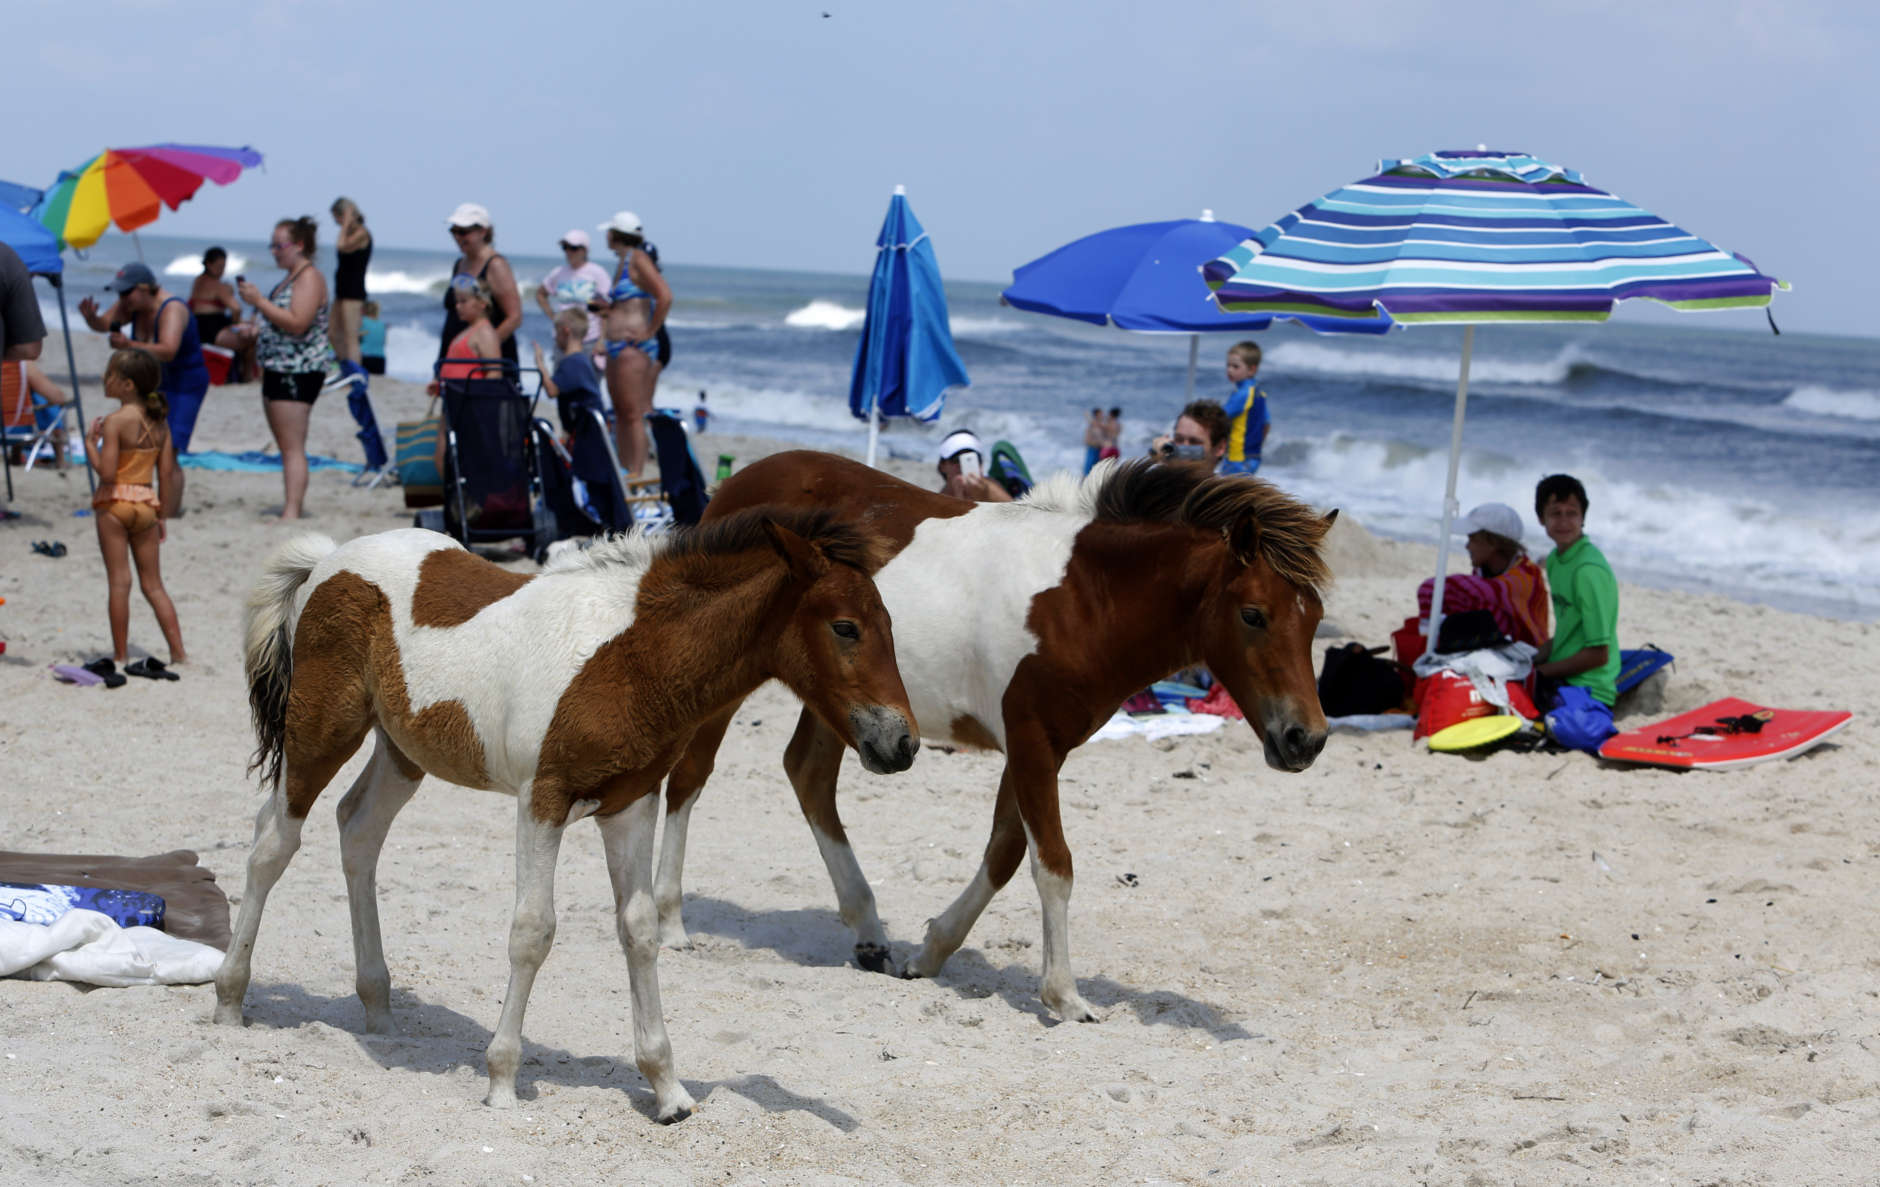 Wild horses roam on South Ocean Beach at Assateague Island National Seashore near Berlin, Md. (AP Photo/Jacqueline Larma)